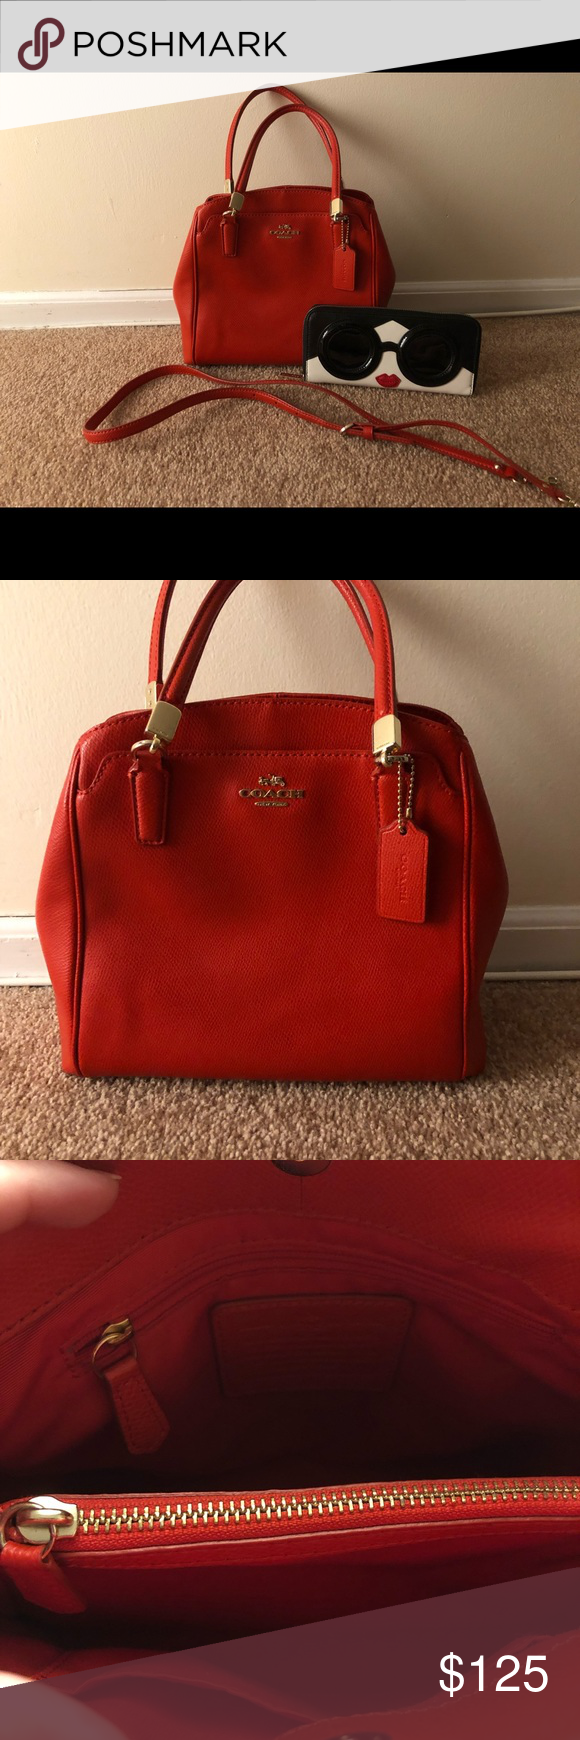 Red Purse Very Pristine Coach Bag f323e8785b1fa